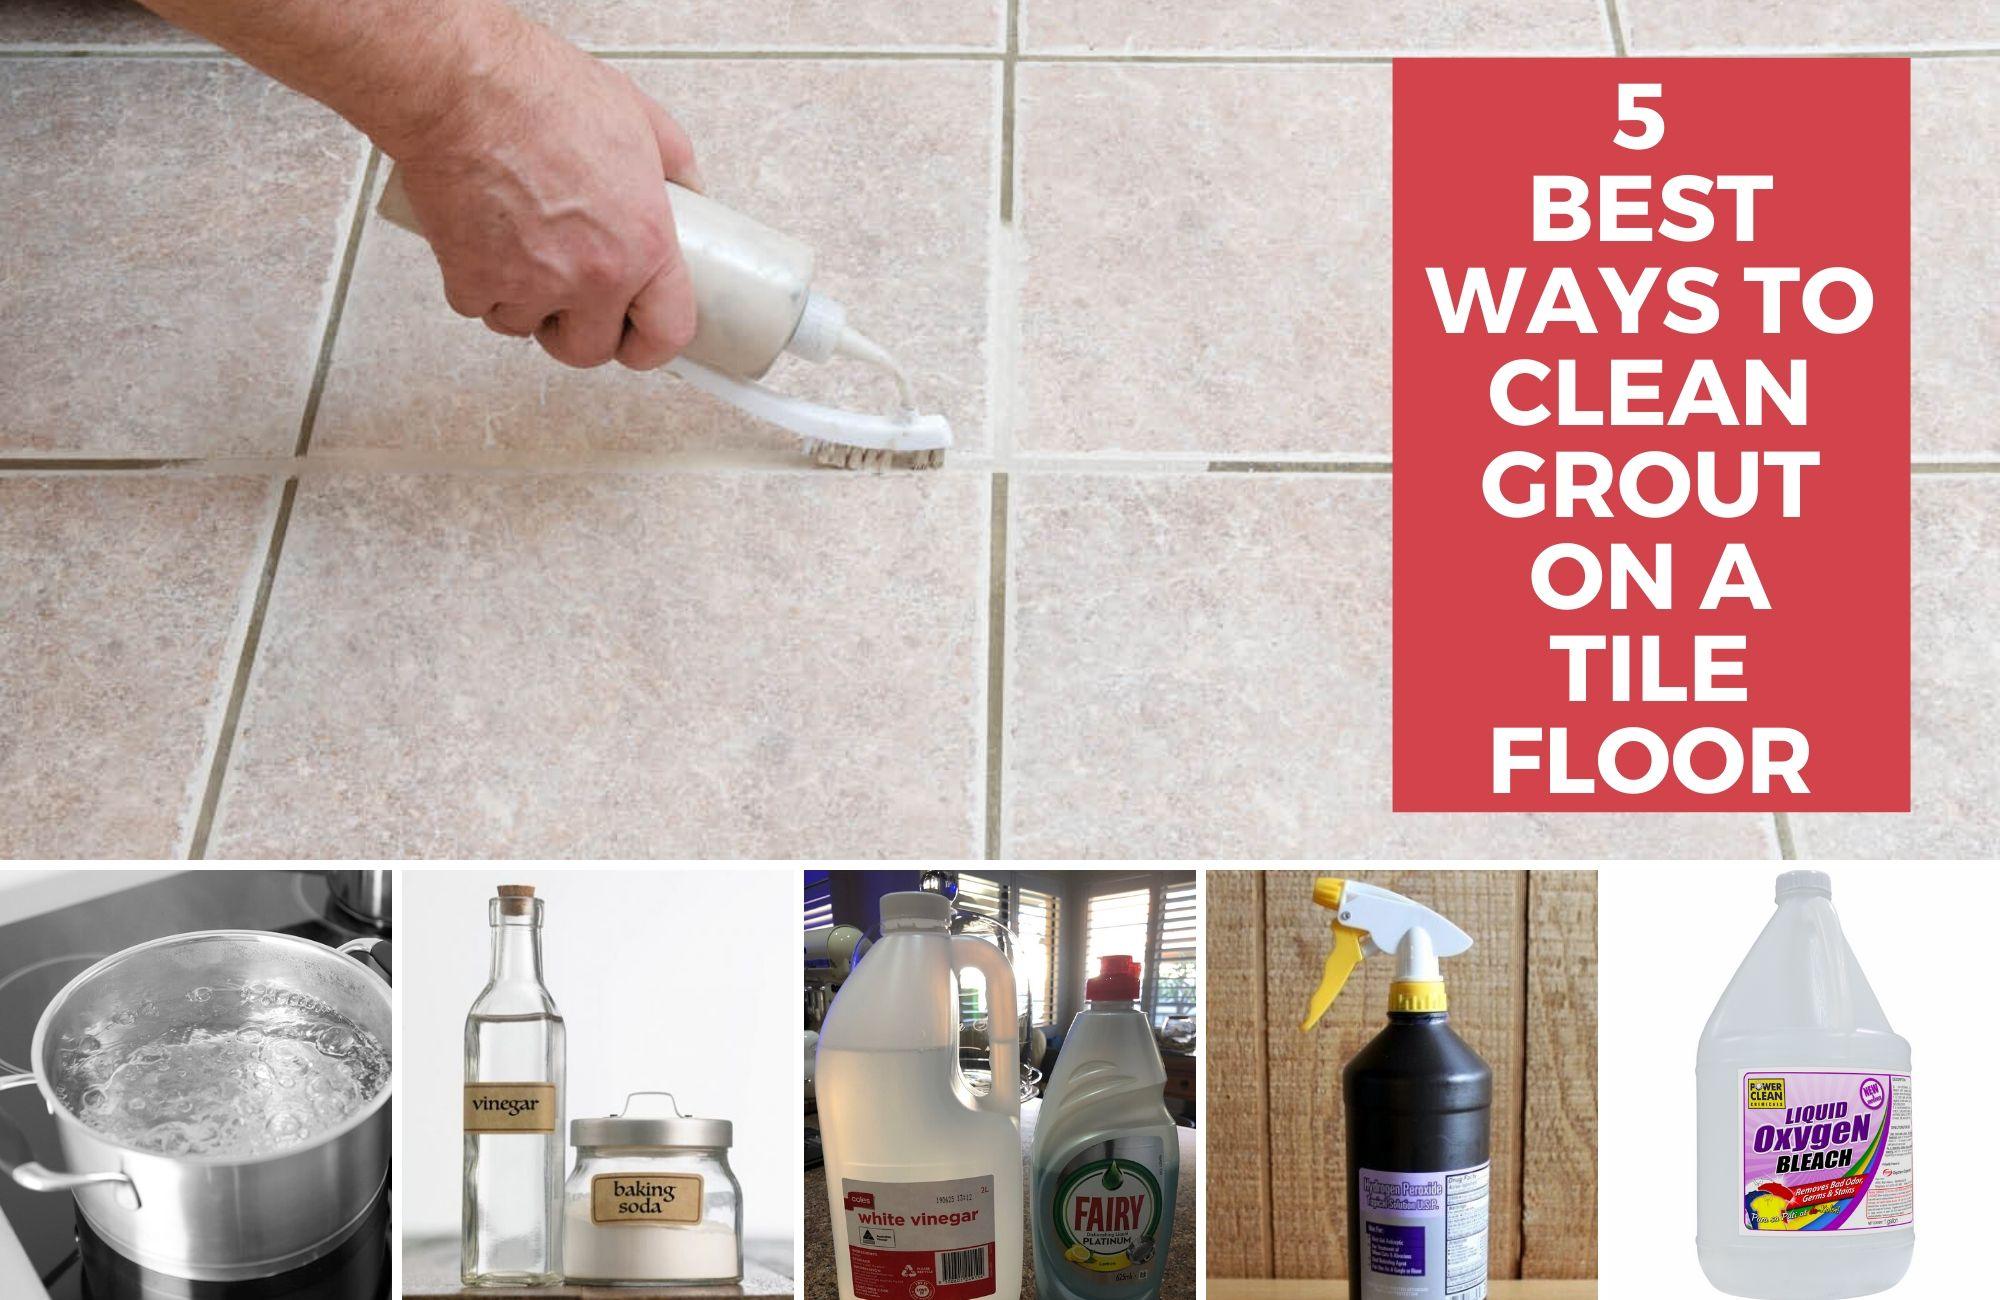 Best ways to clean grout on a tile floor